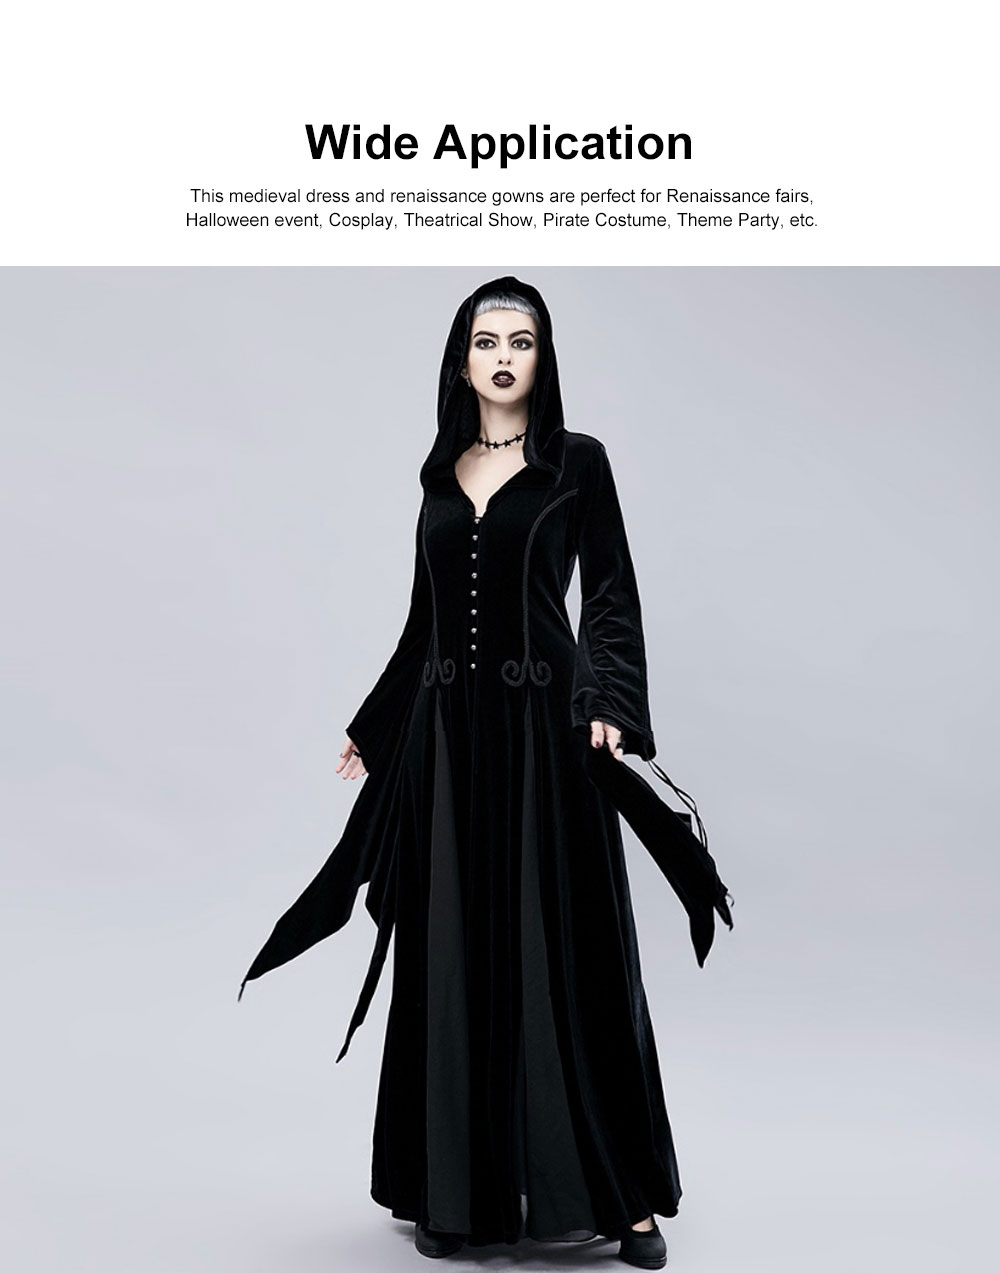 Women Gothic Halloween Costume, Renaissance Medieval Cosplay Dress Black, Long Sleeve Hooded Witch Dress Victorian Costume 3